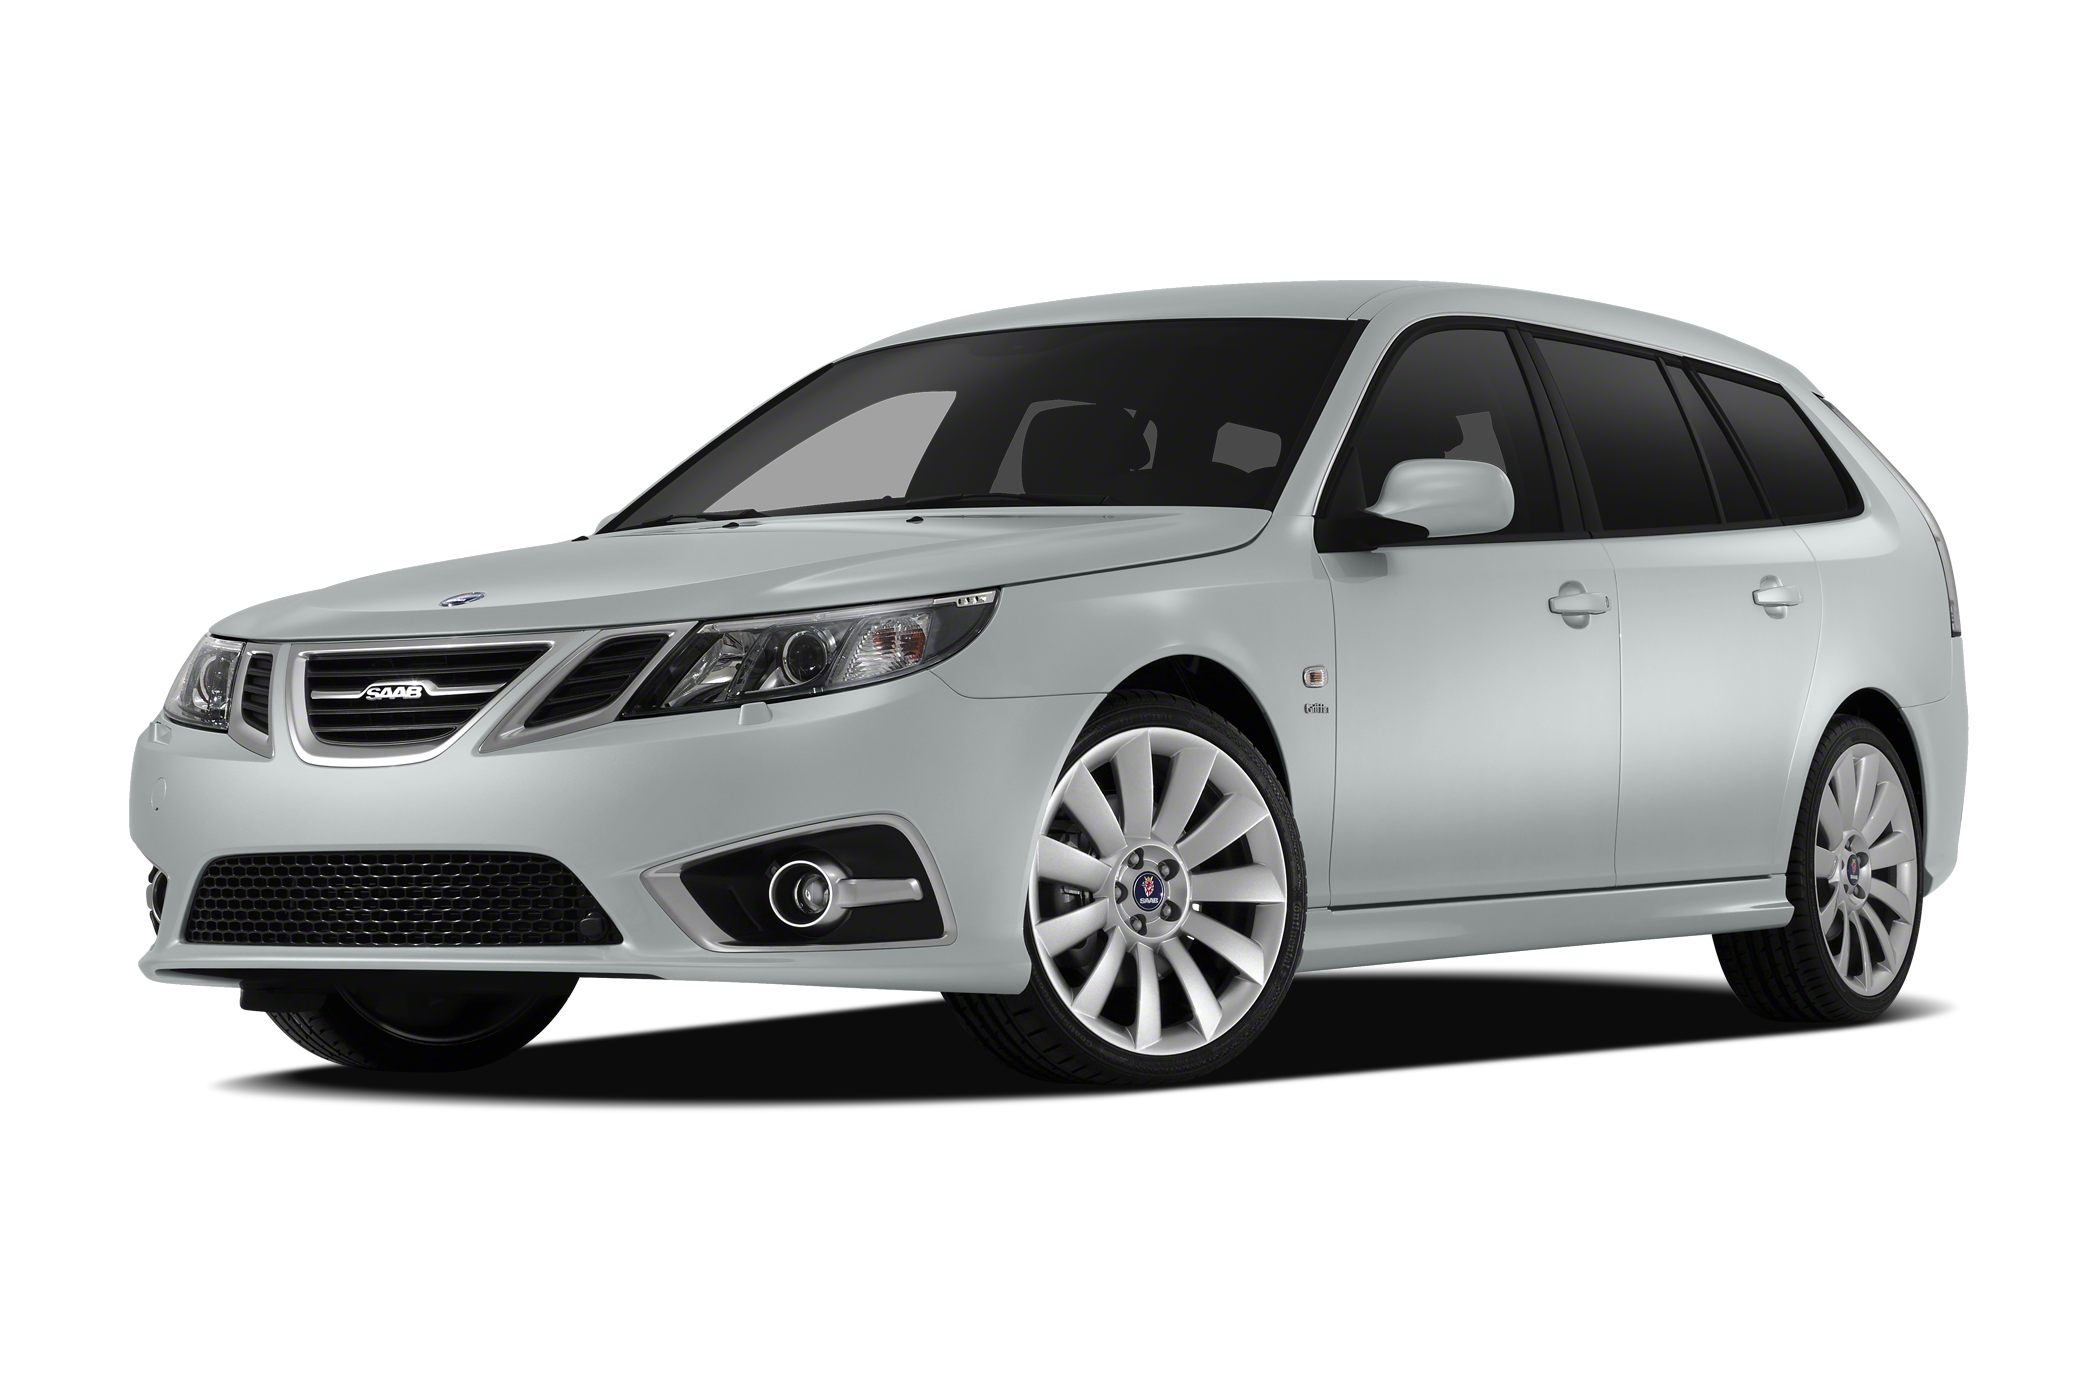 saab 9 3x news photos and buying information autoblog. Black Bedroom Furniture Sets. Home Design Ideas